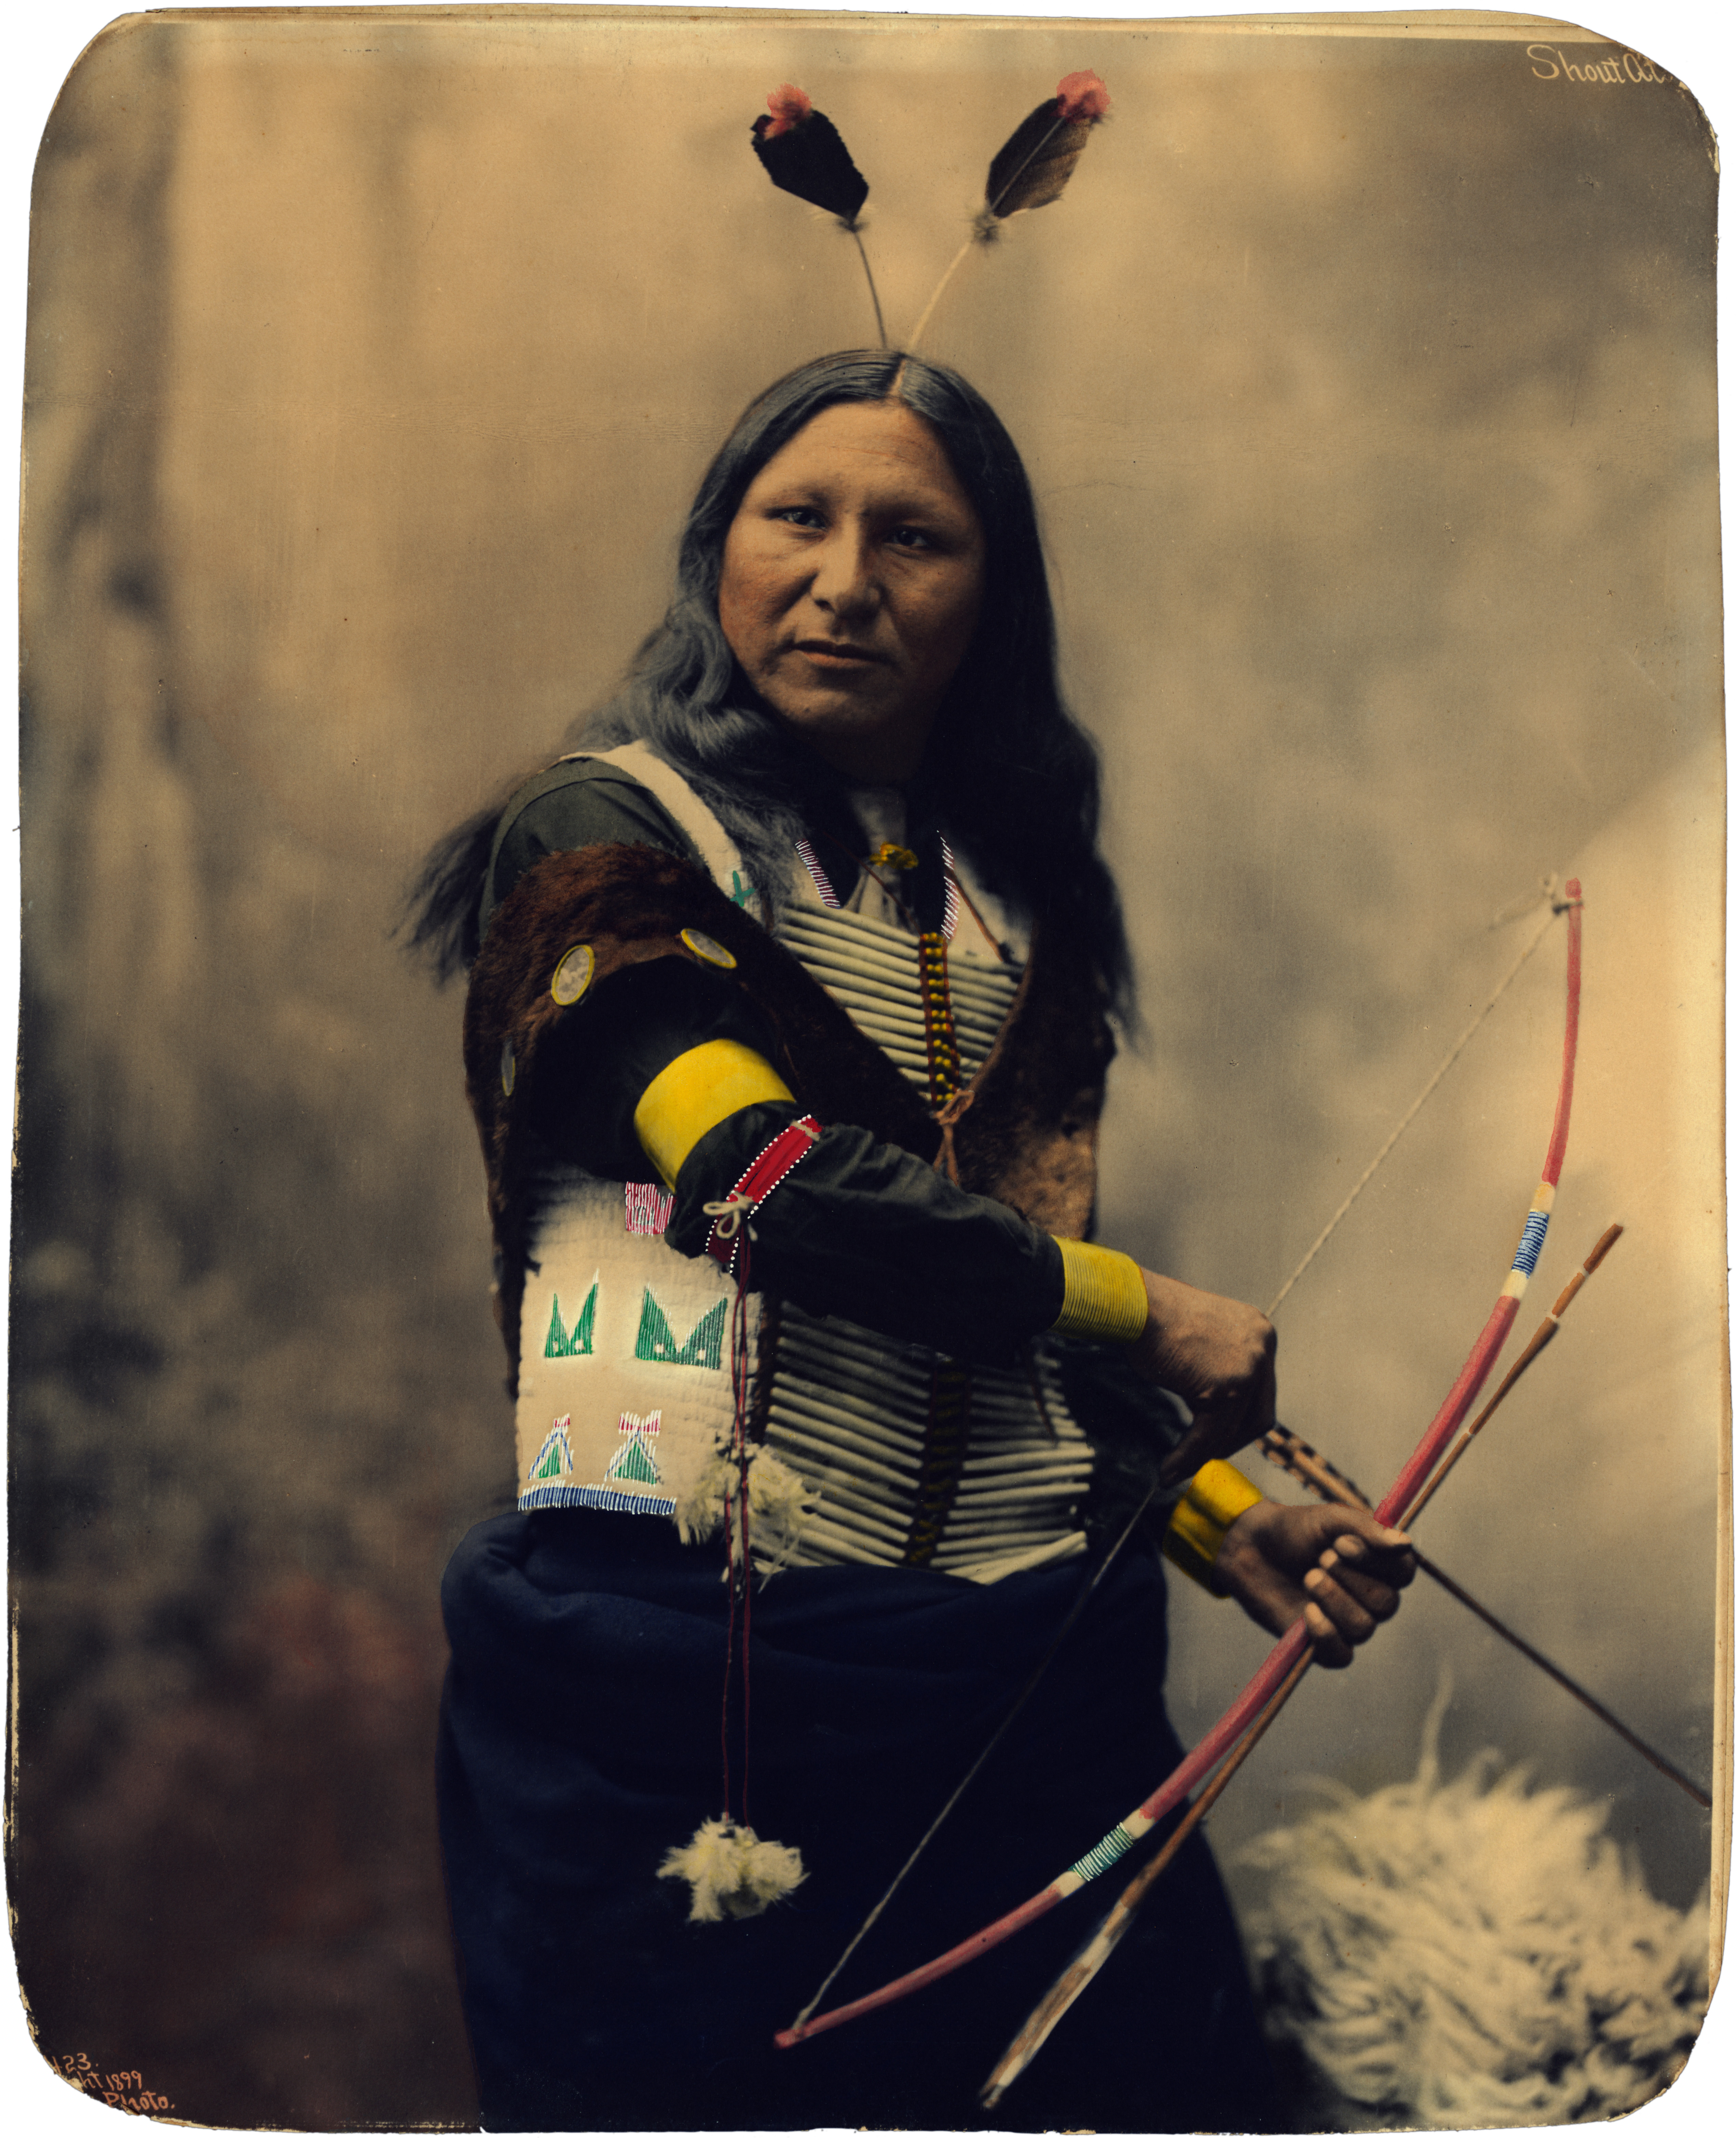 a review of the conflict between the lakota sioux indians and the whites As america expanded into the west, whites often encroached on indian land and resources the indian wars: struggle between native americans and settlers several of the most legendary names and places of the indian wars involved the lakota sioux, whose experience perfectly exemplifies the struggles of this.